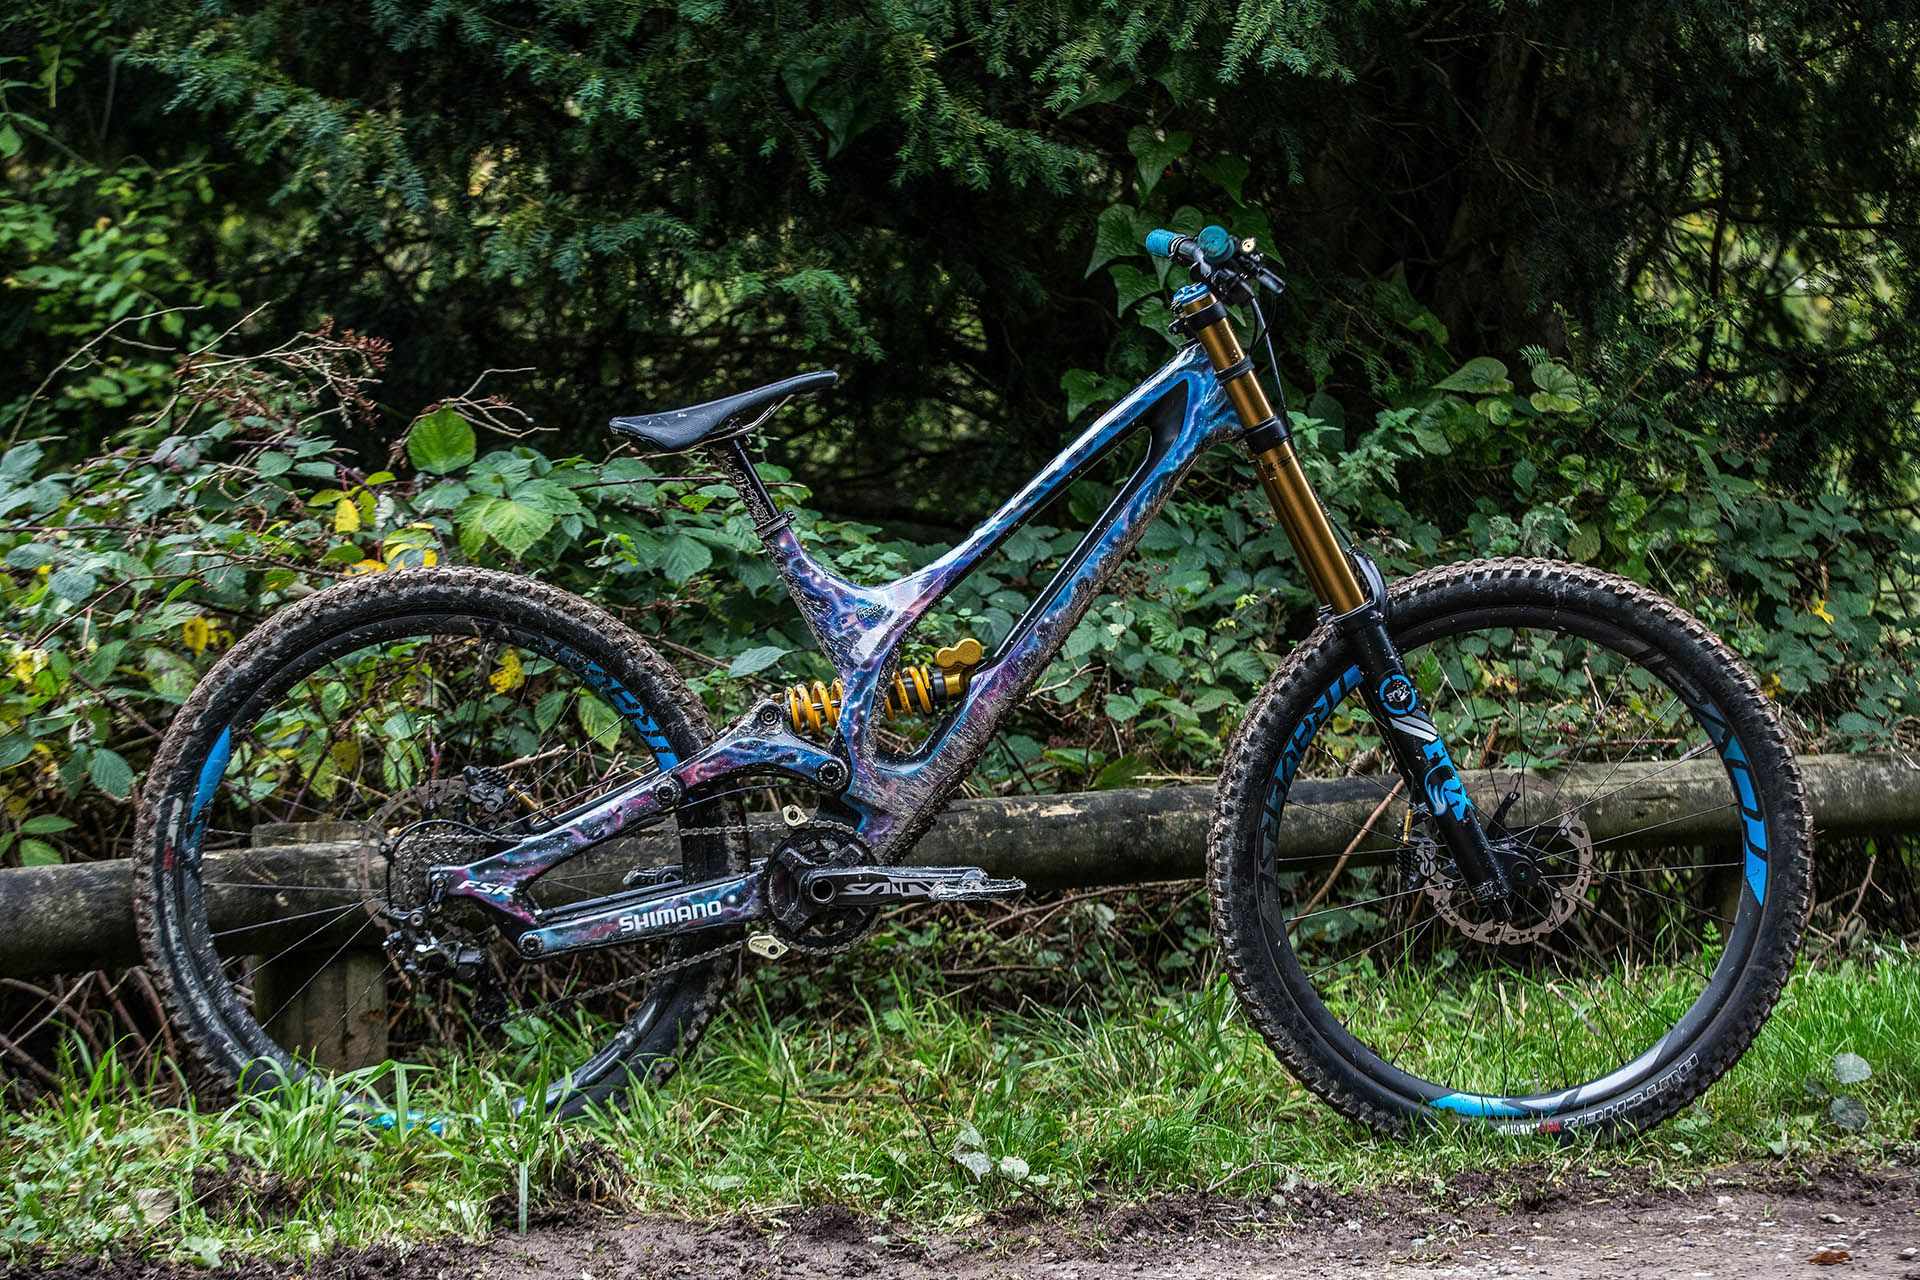 956ad8ea752 Ken Block's Specialized Carbon S-Works Demo 8 | MTB BICYCLES ...